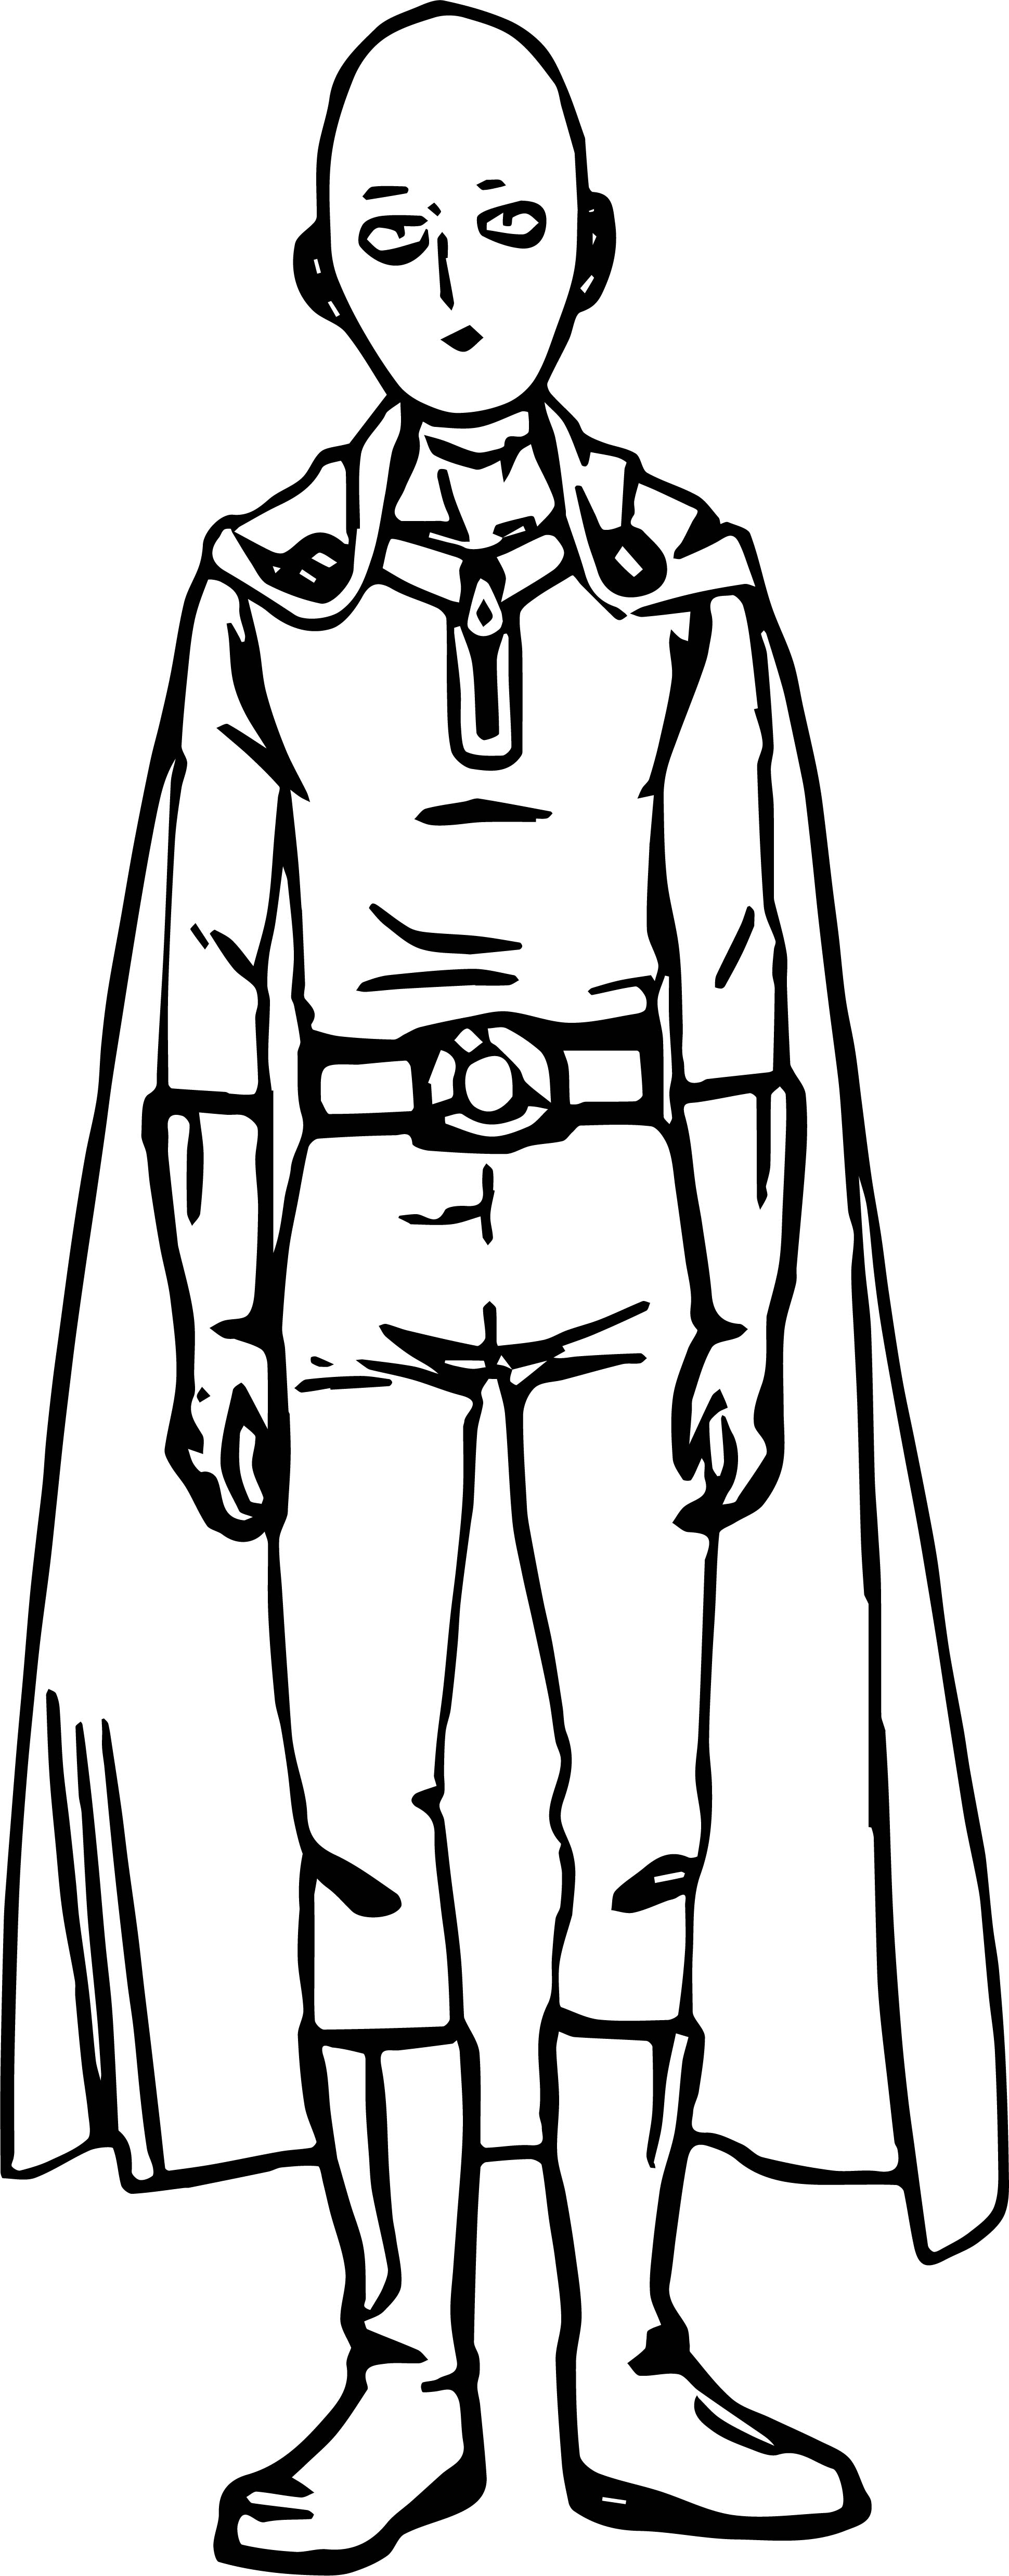 Saitama One Punch Man Anime Character Design Coloring Page